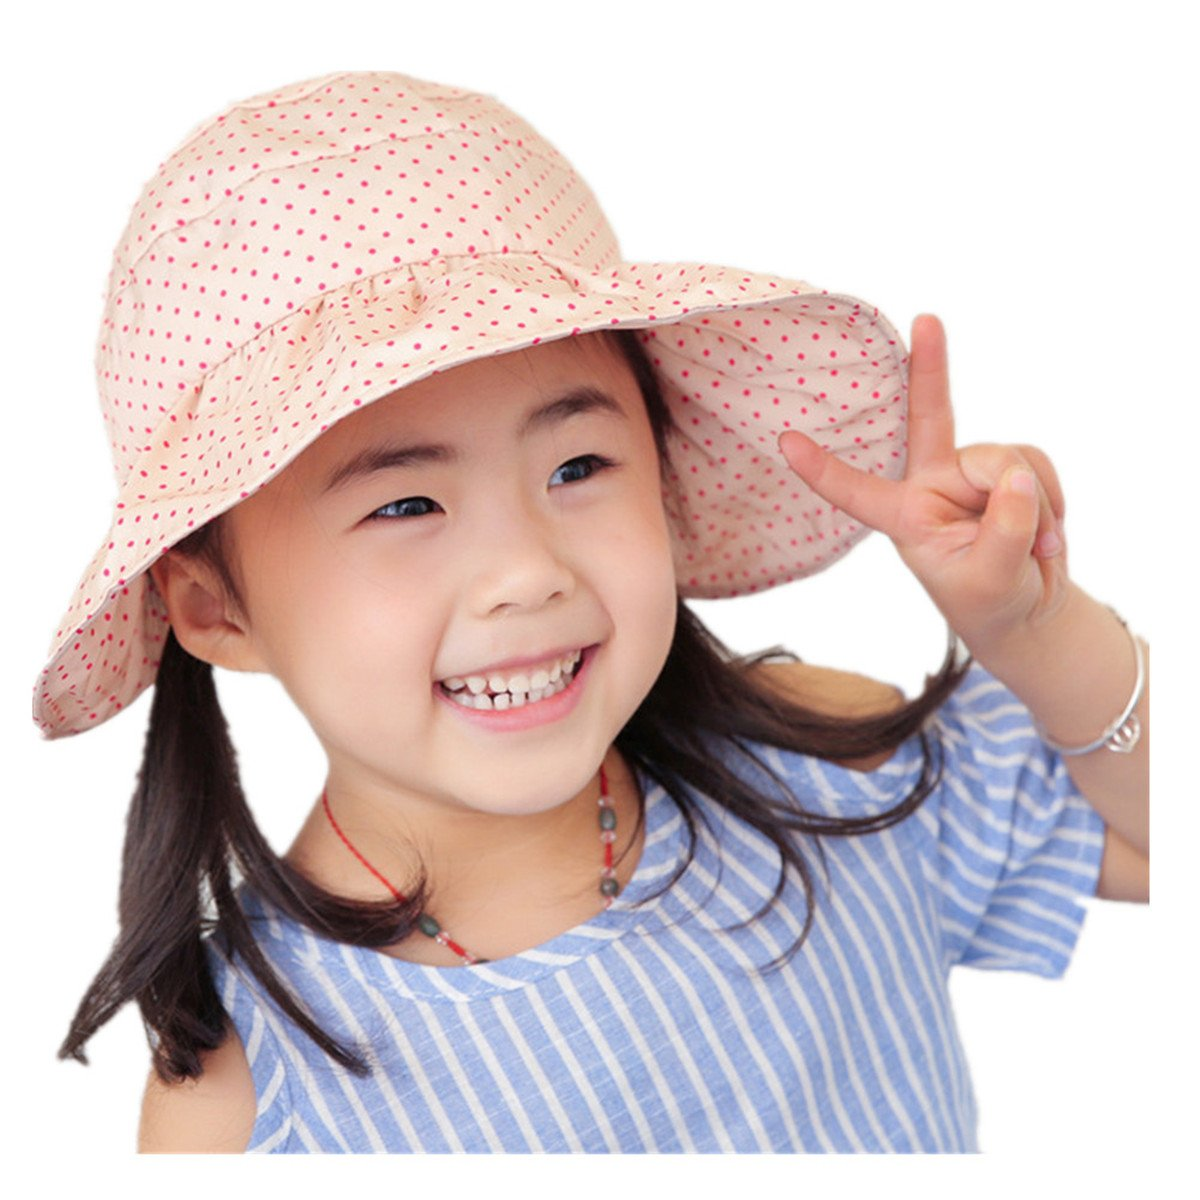 CHRISTYZHANG Baby Girls UPF 50+ Sun Protection Hat Cotton Breathable Summer Kids Caps (Pink)